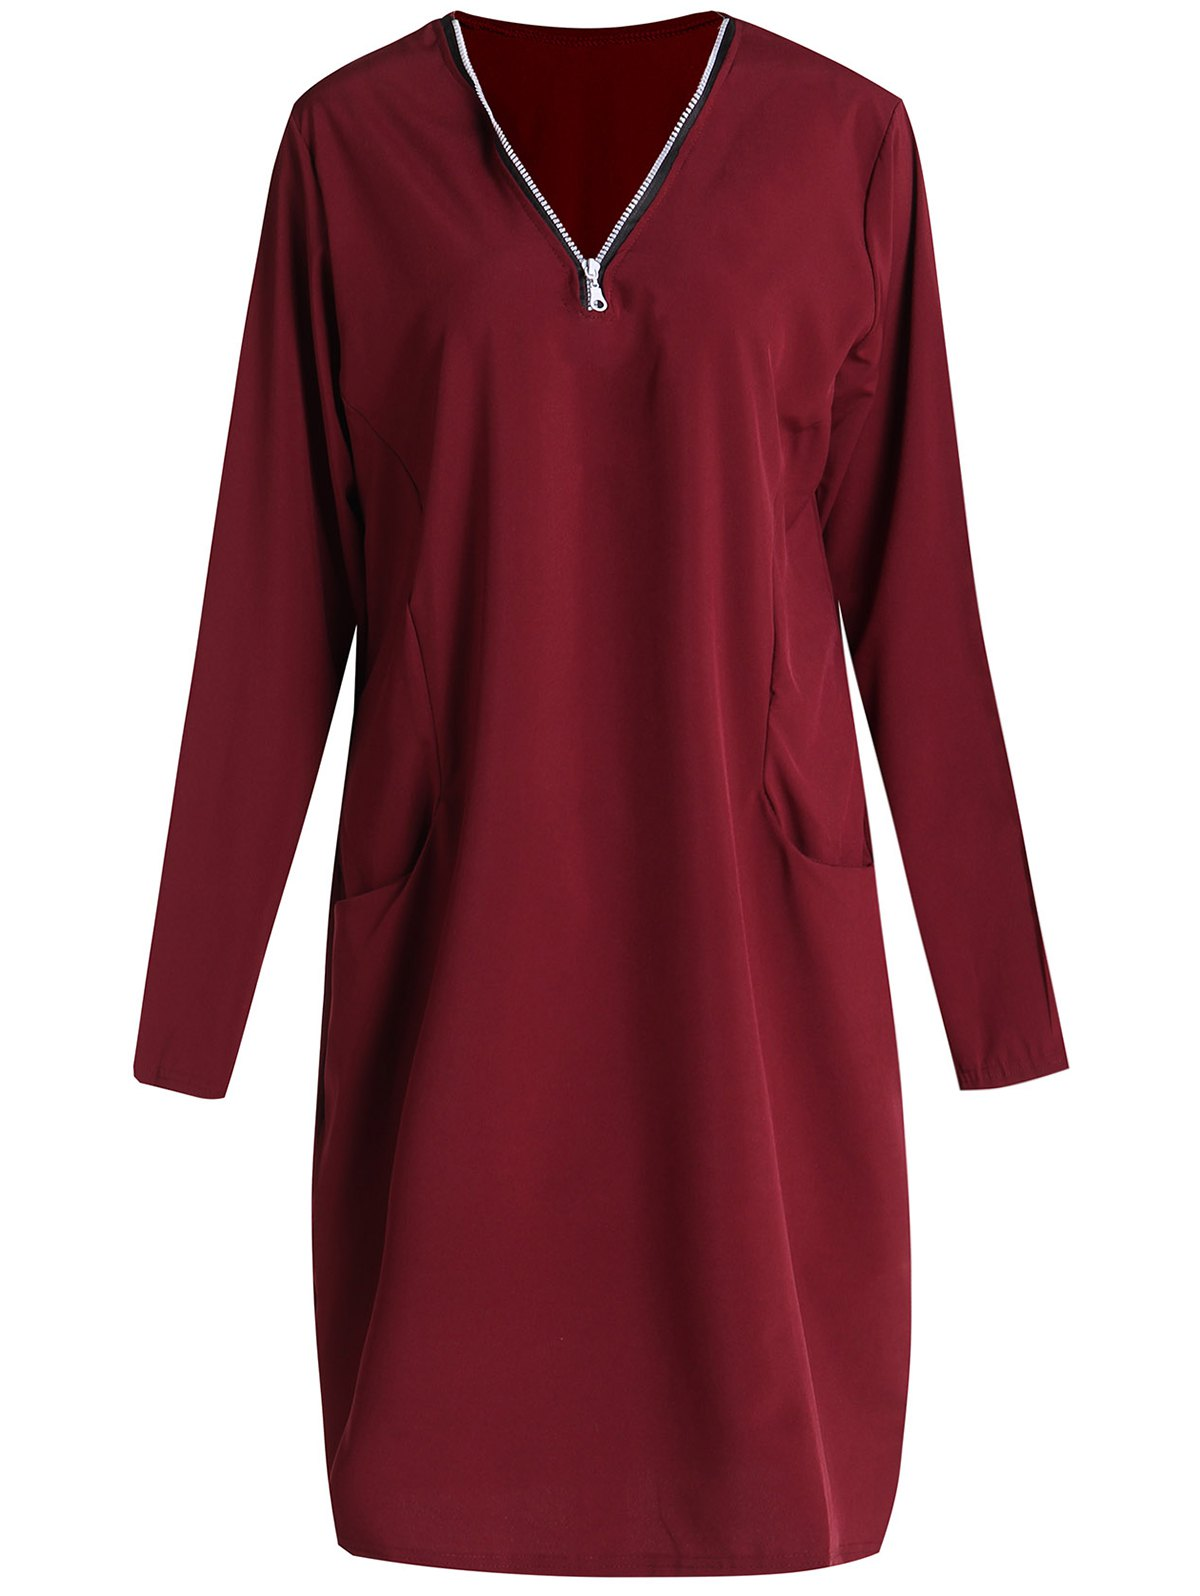 Stylish V-Neck Long Sleeve Plus Size Solid Color Women's Dress - WINE RED 4XL